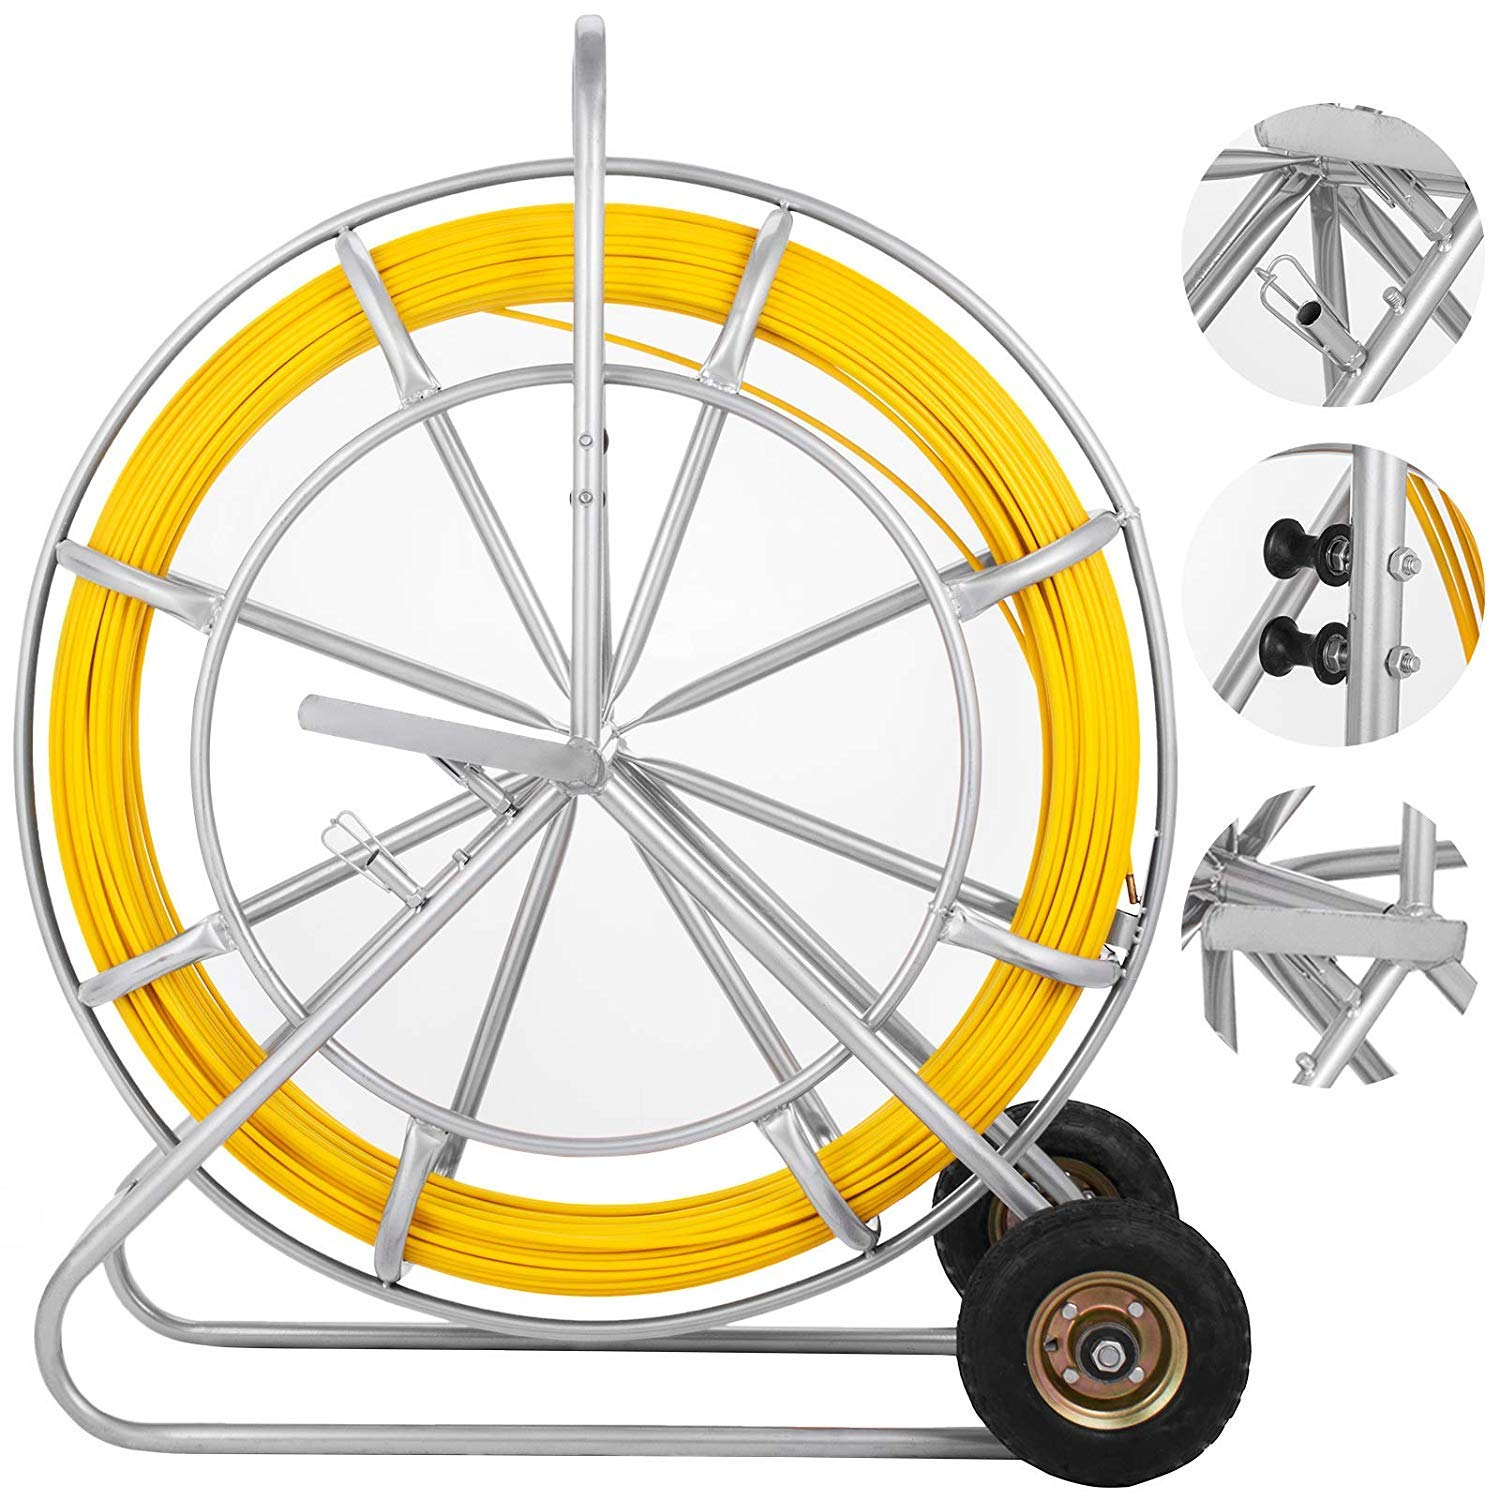 VEVOR Fish Tape Fiberglass 8MM 853FT Duct Rodder Fish Tape Continuous Fiberglass Tape Wire Cable Running with Cage and Wheel Stand